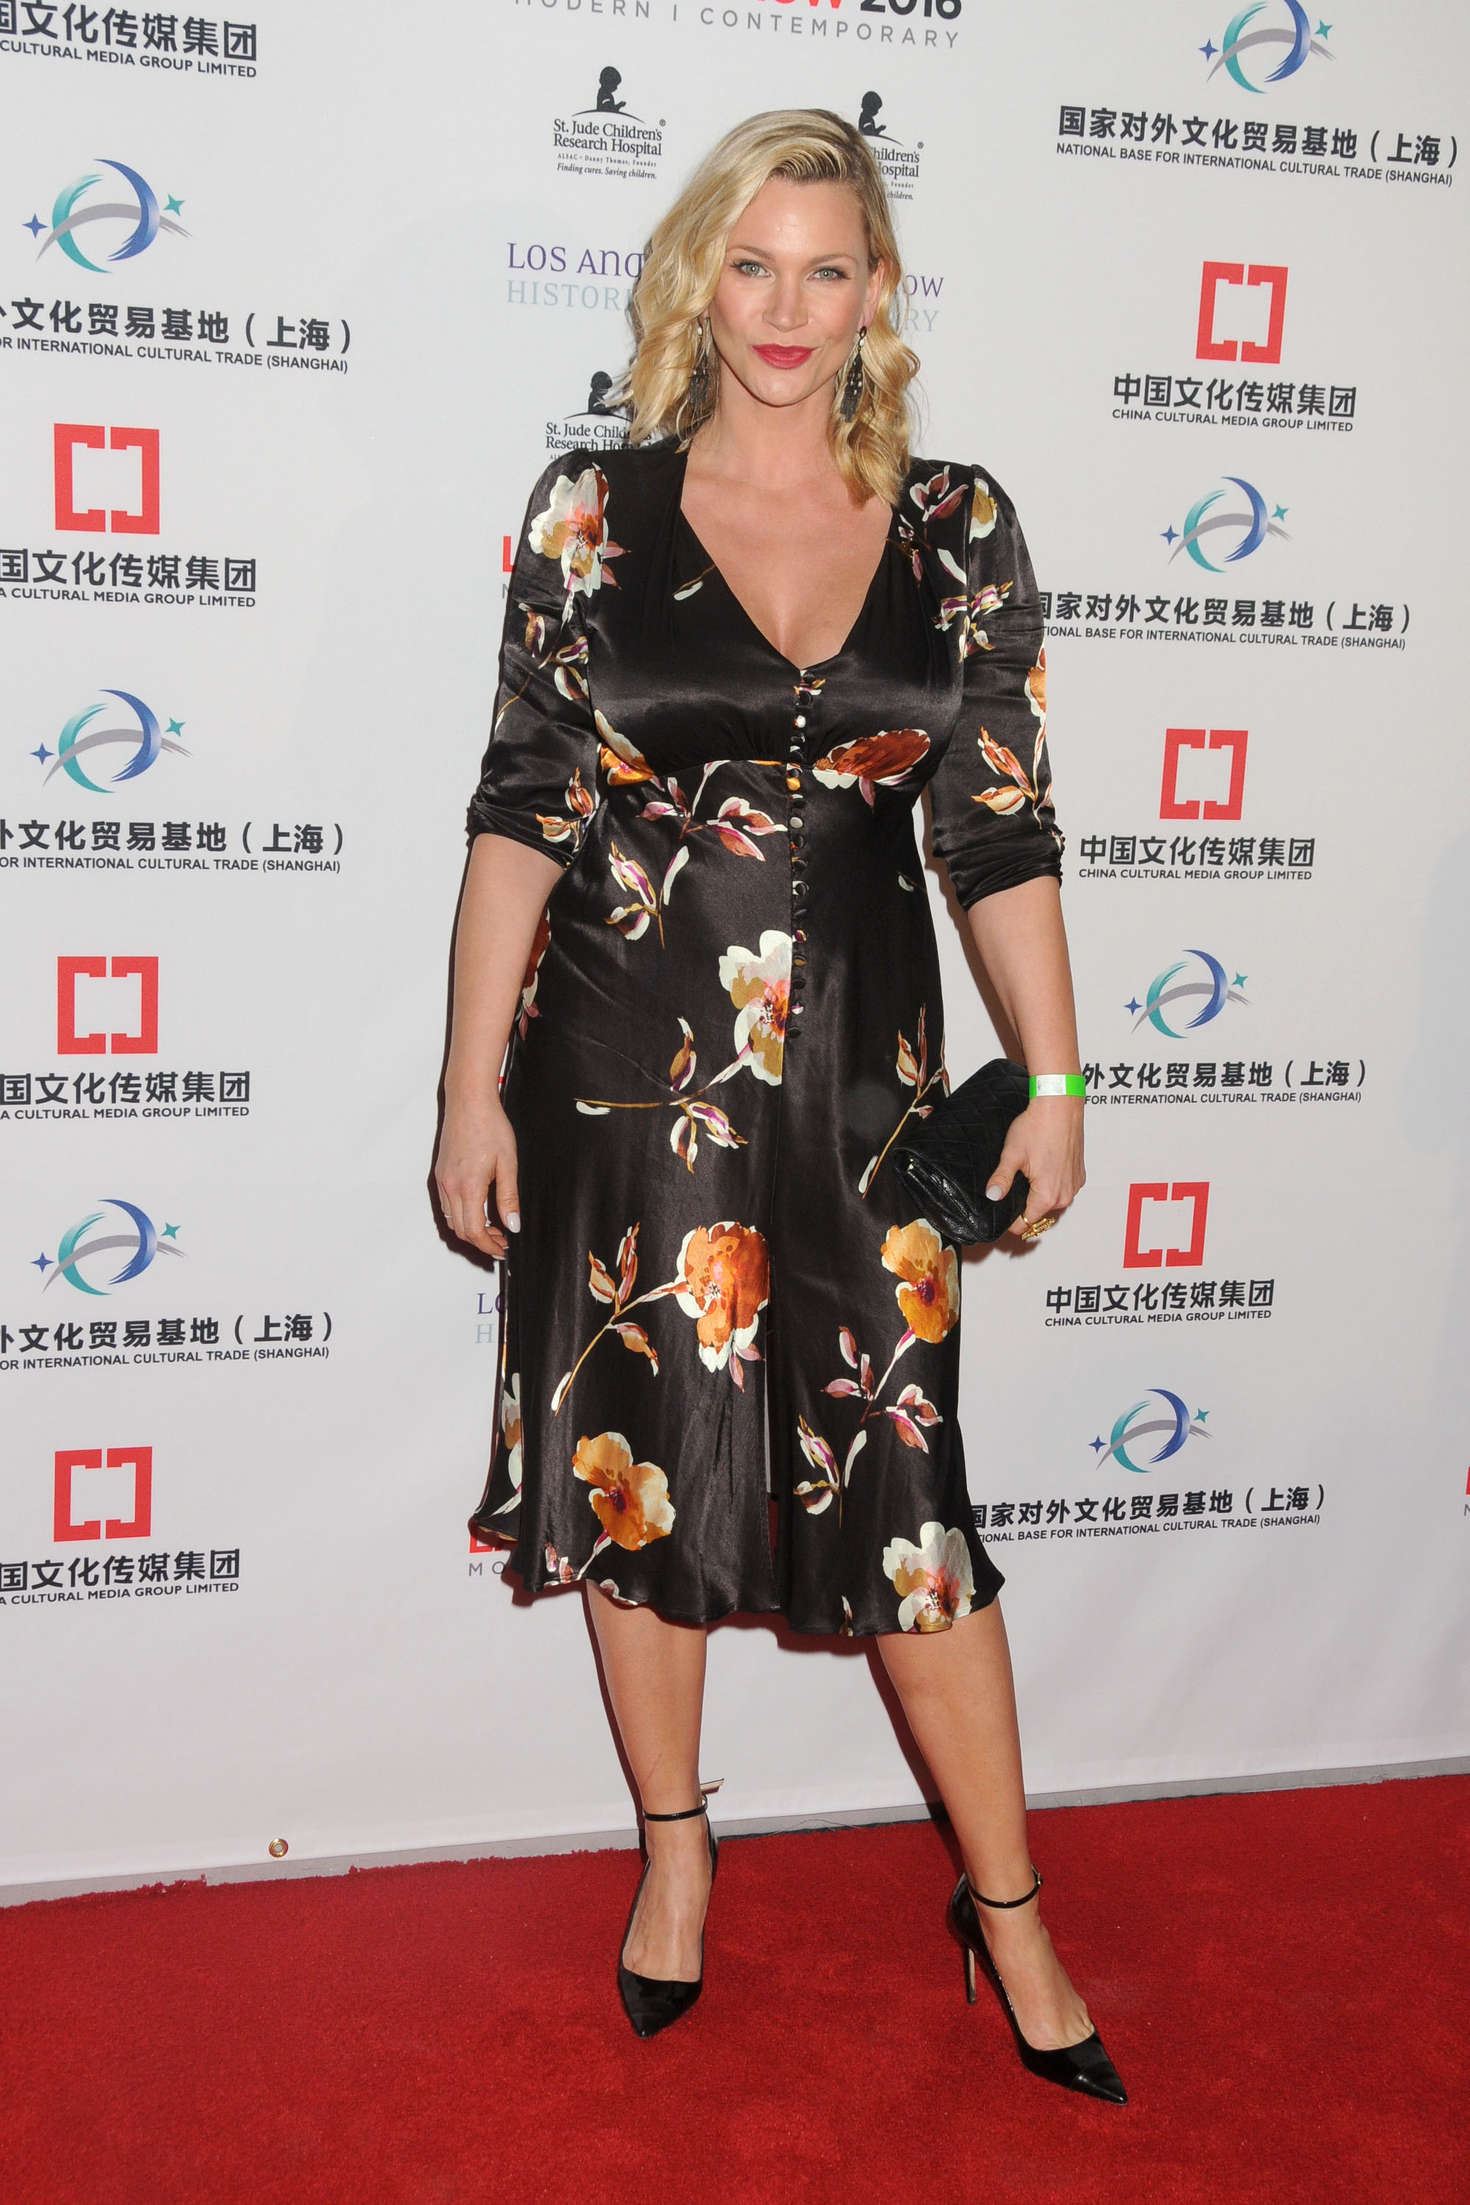 Natasha Henstridge The Los Angeles Art Show and The Los Angeles Fine Art Show in Los Angeles